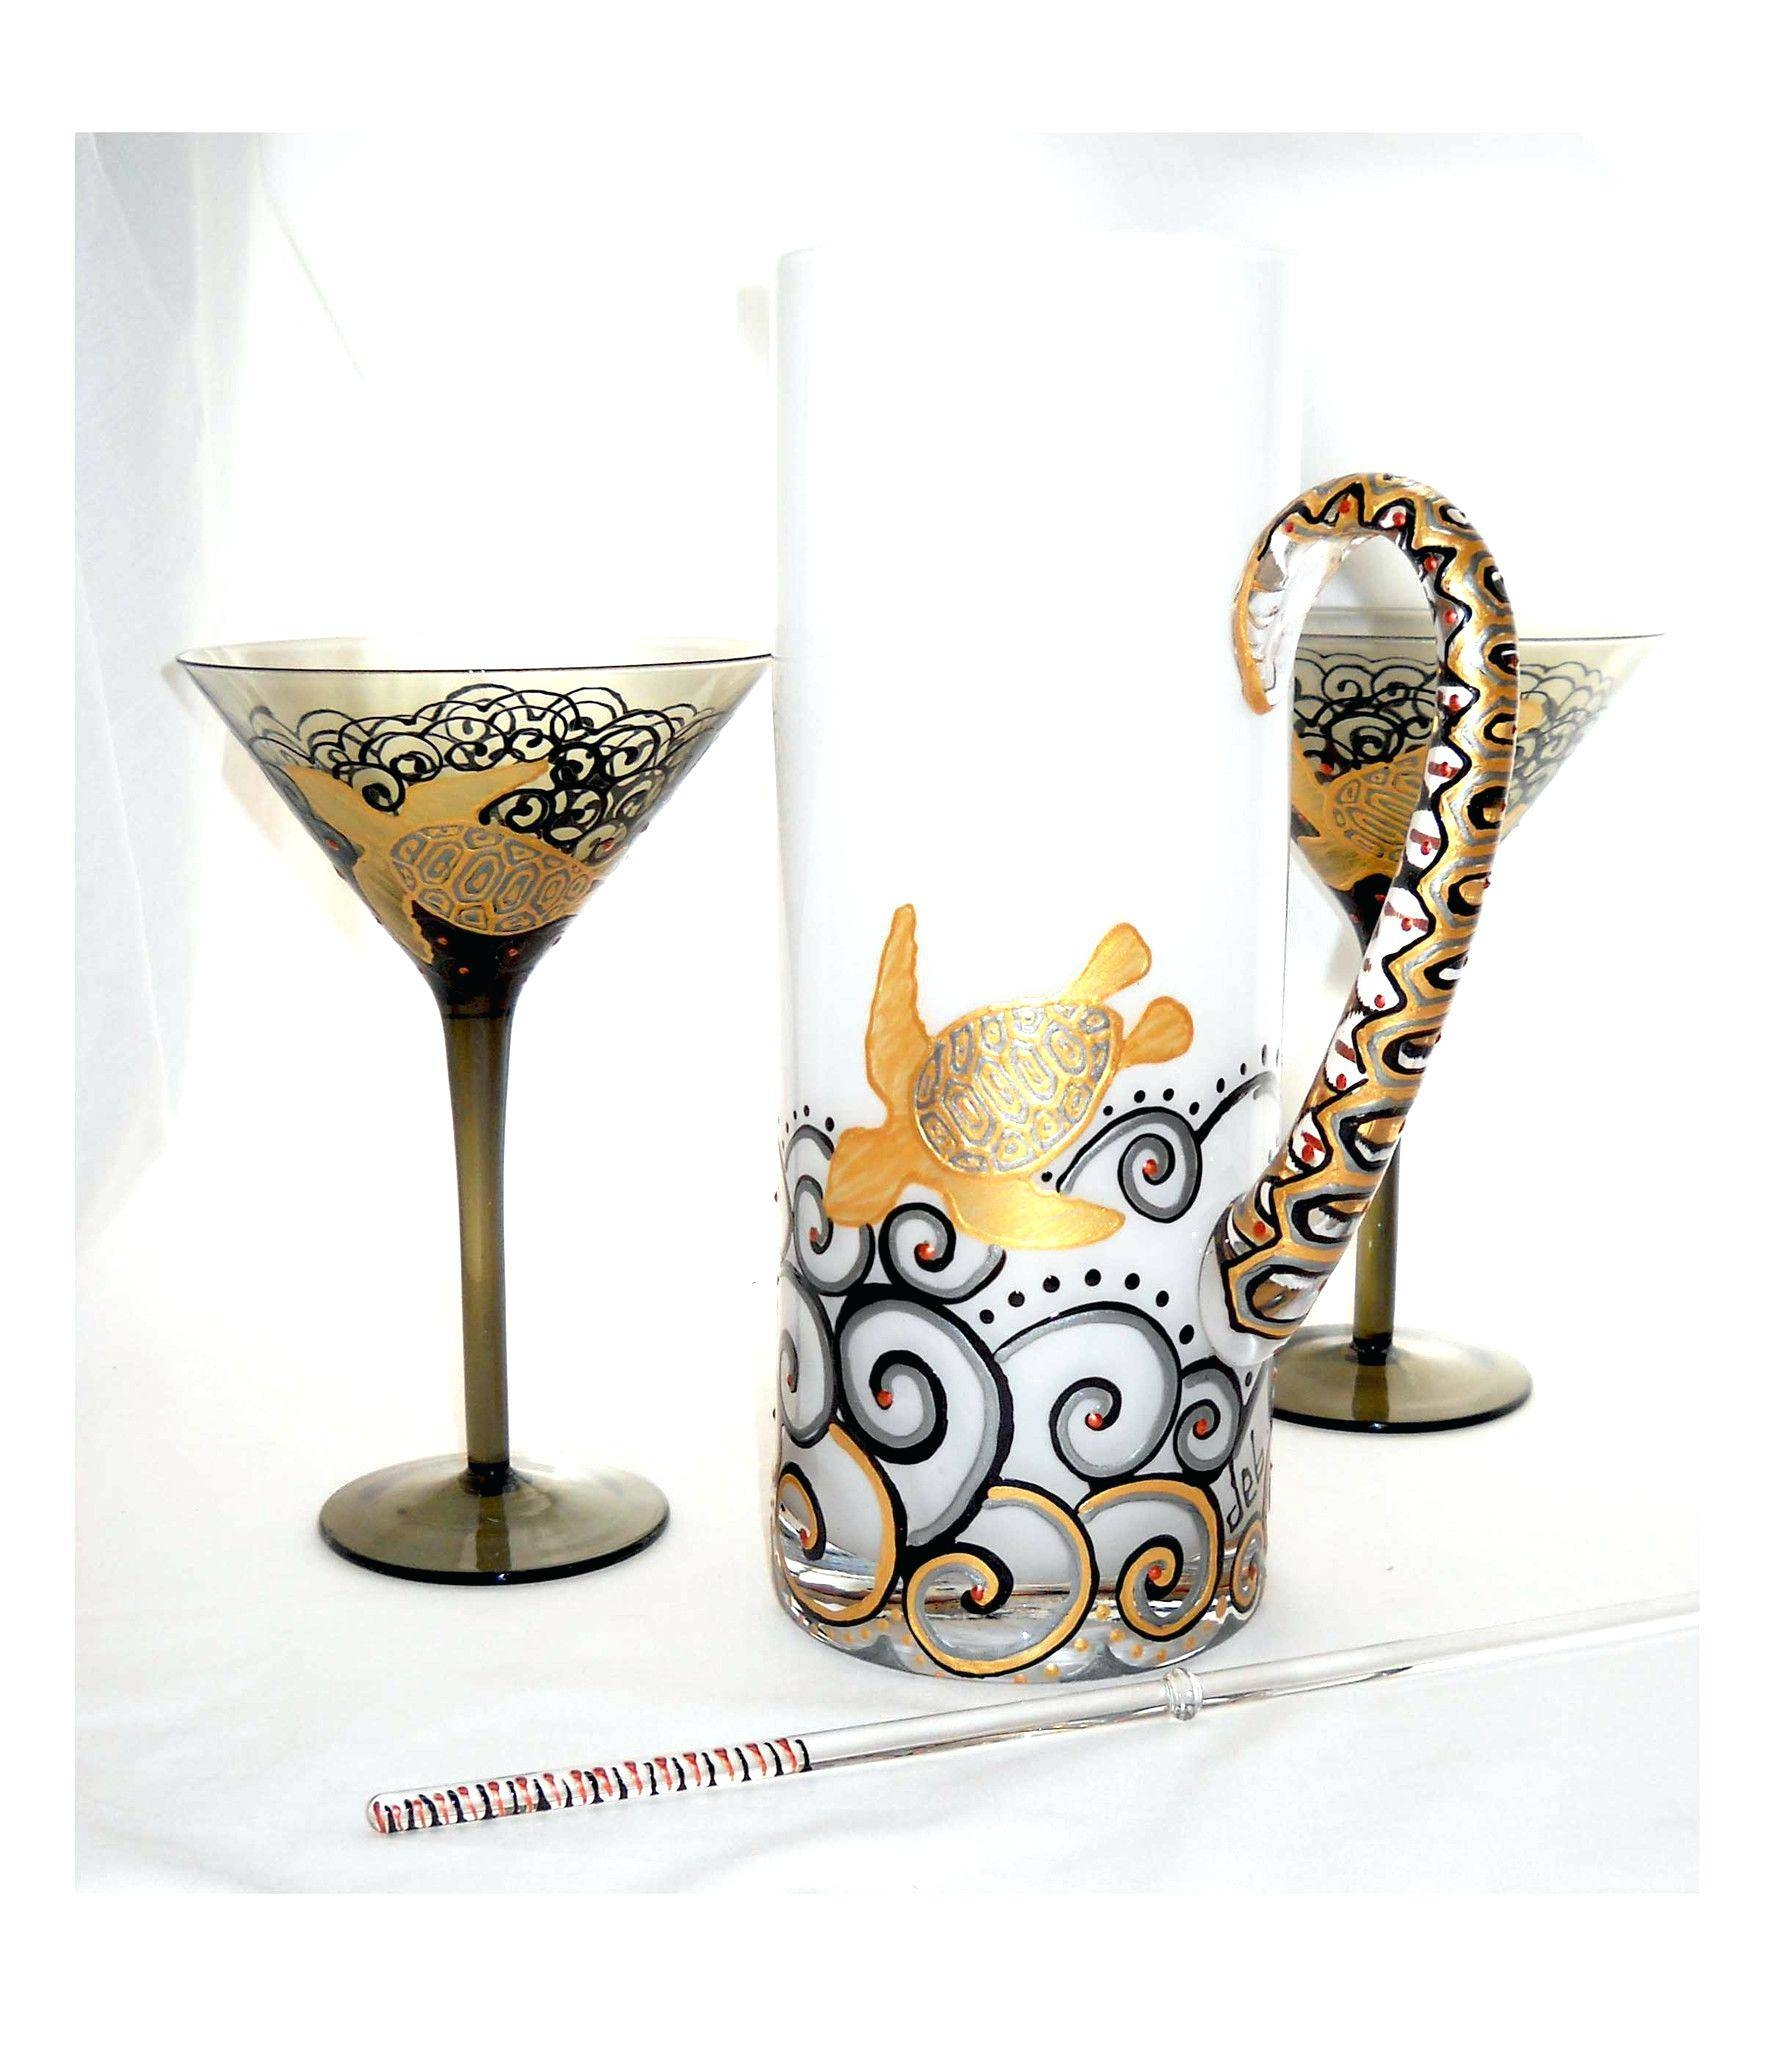 Wall Decor : 108 274 Best Art Brimming Glasses Images On Pinterest For Most Up To Date Martini Glass Wall Art (View 6 of 30)